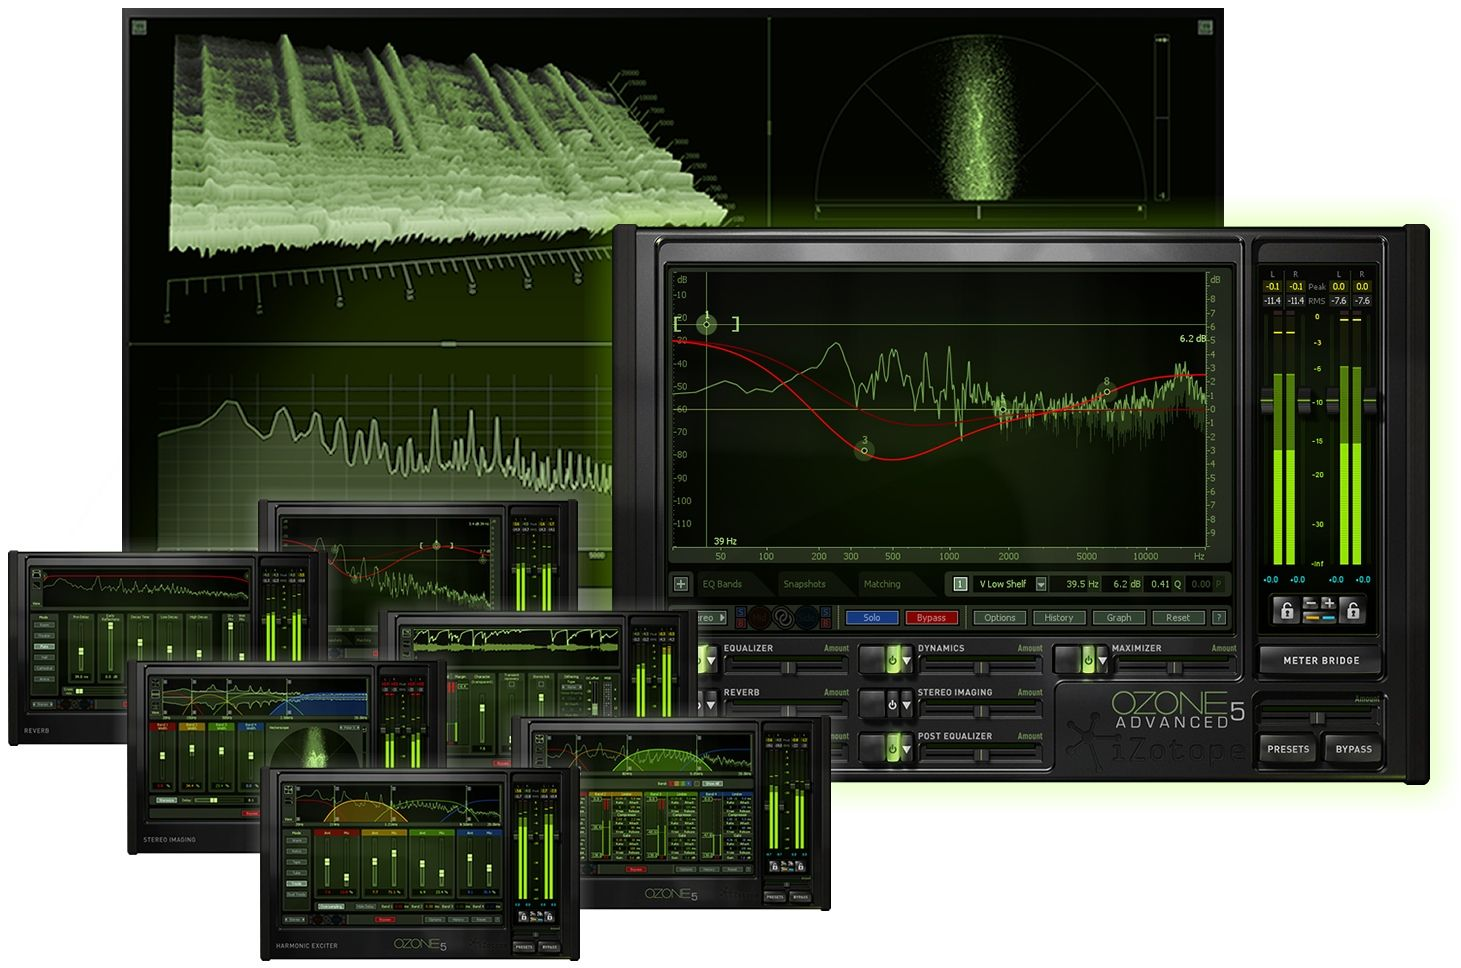 Mastering with iZotope Ozone 5